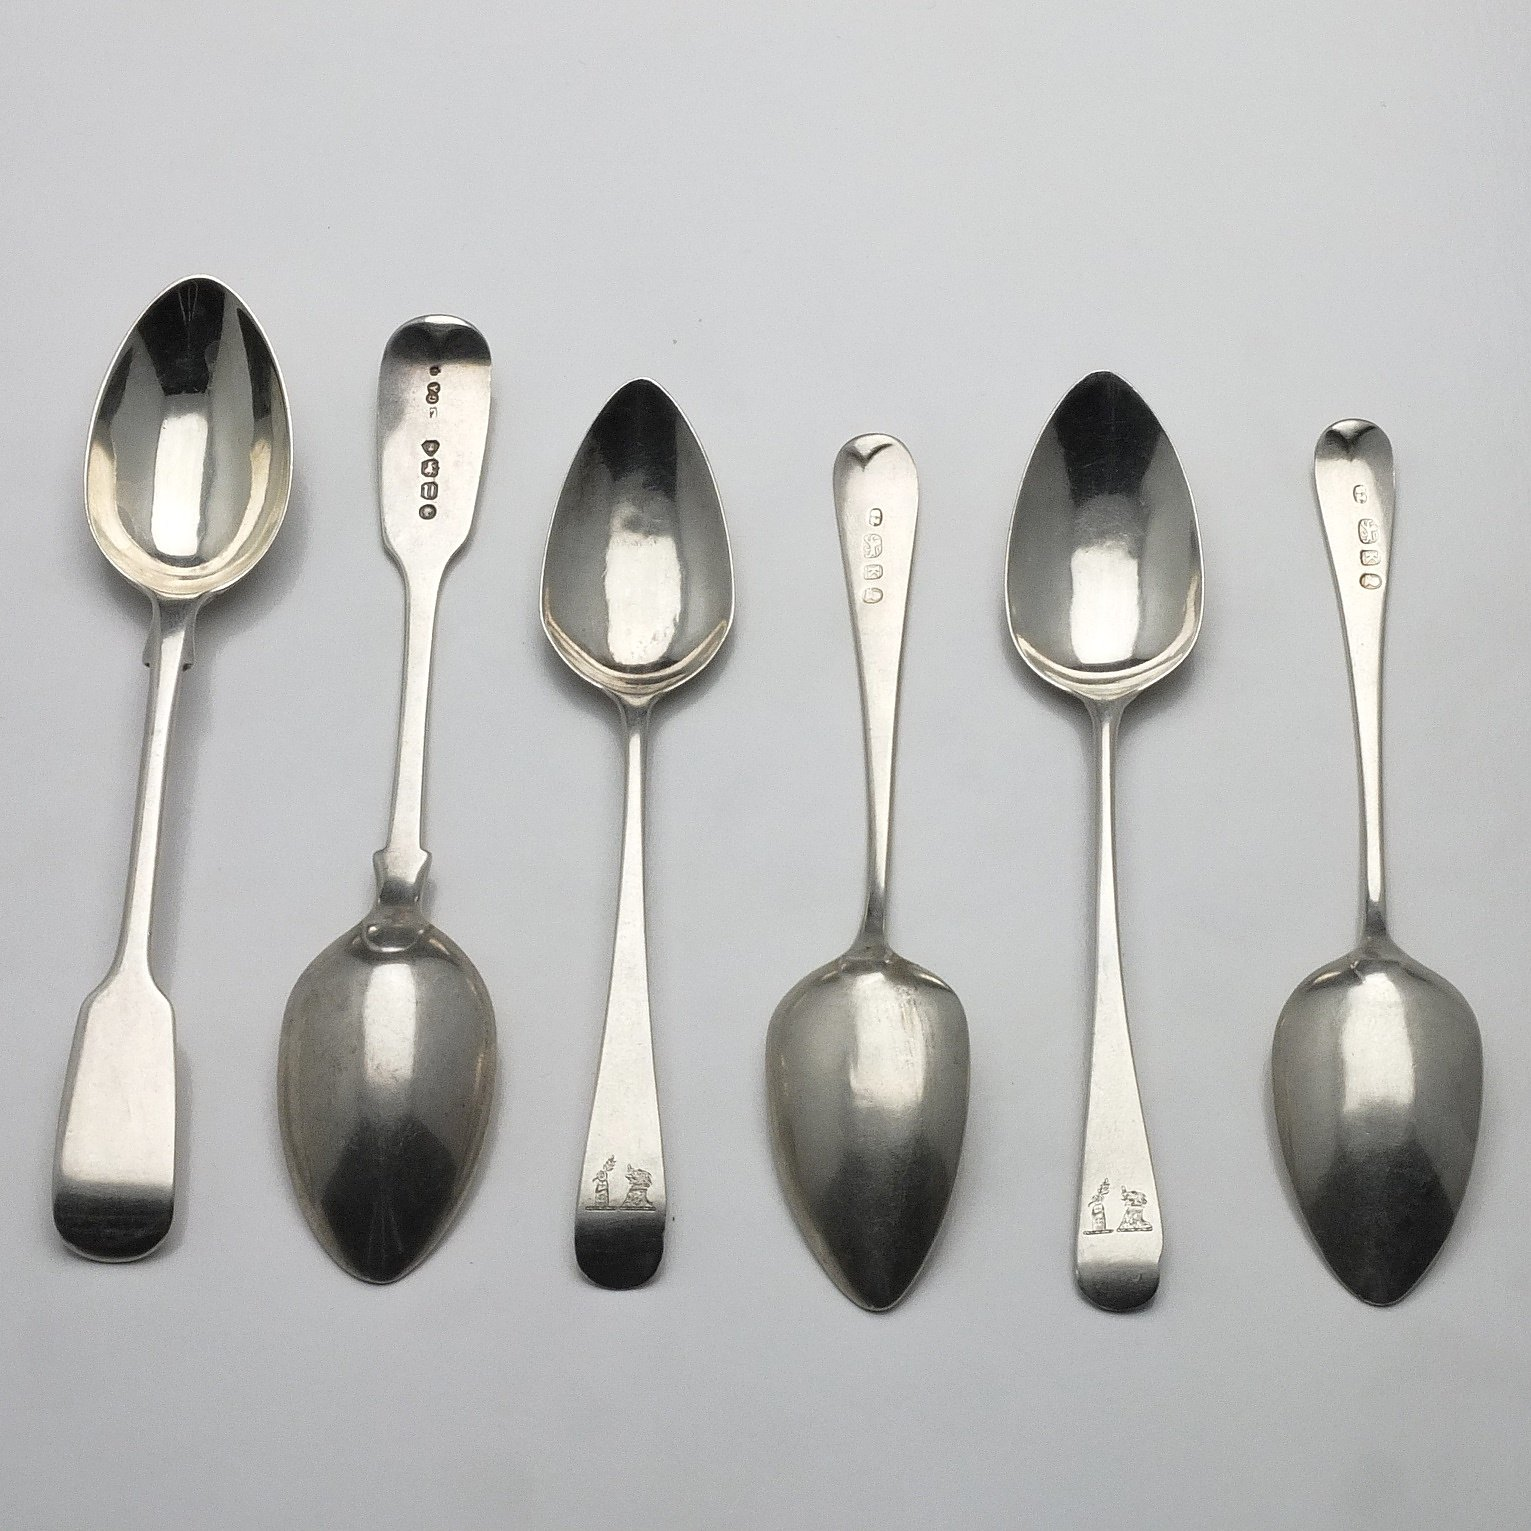 'Six Sterling Silver Teaspoons, Including Two Chawner & Co London 1875'